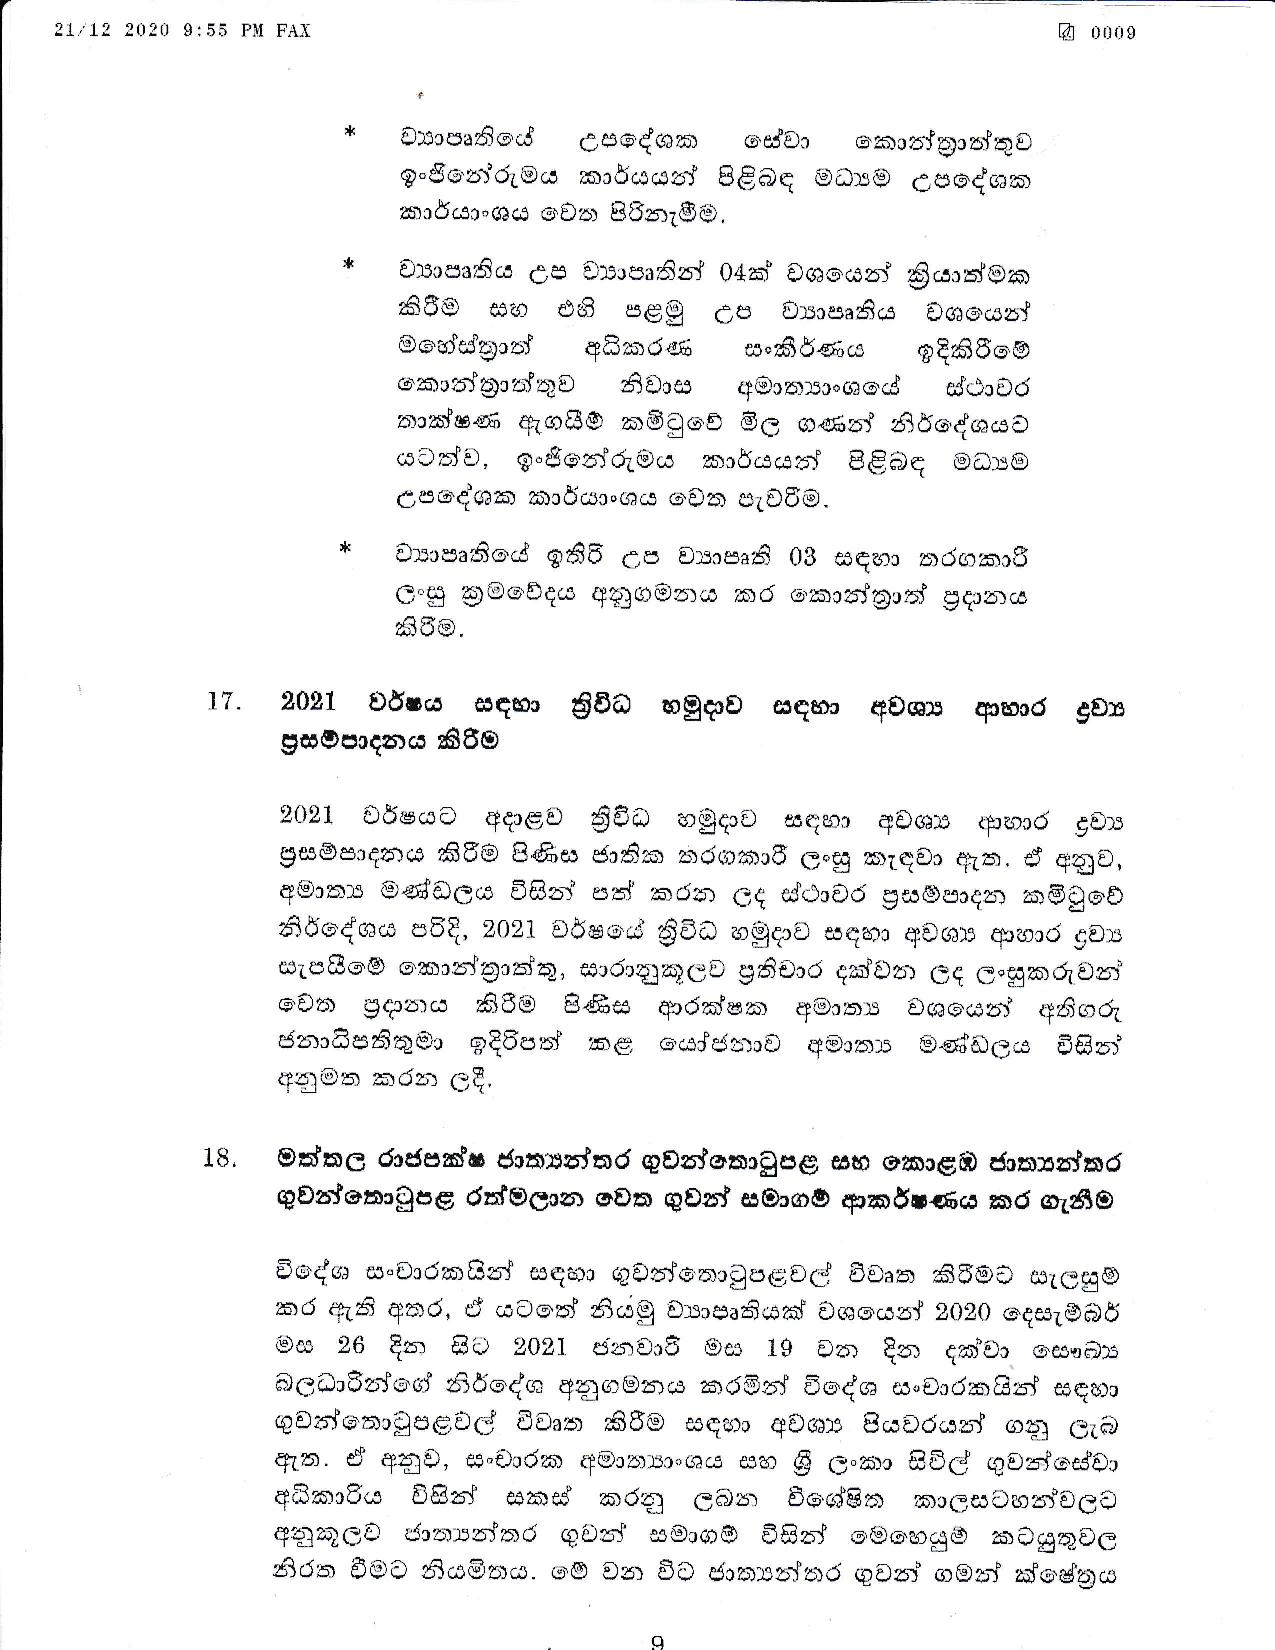 Cabinet Decision on 21.12.2020 page 009